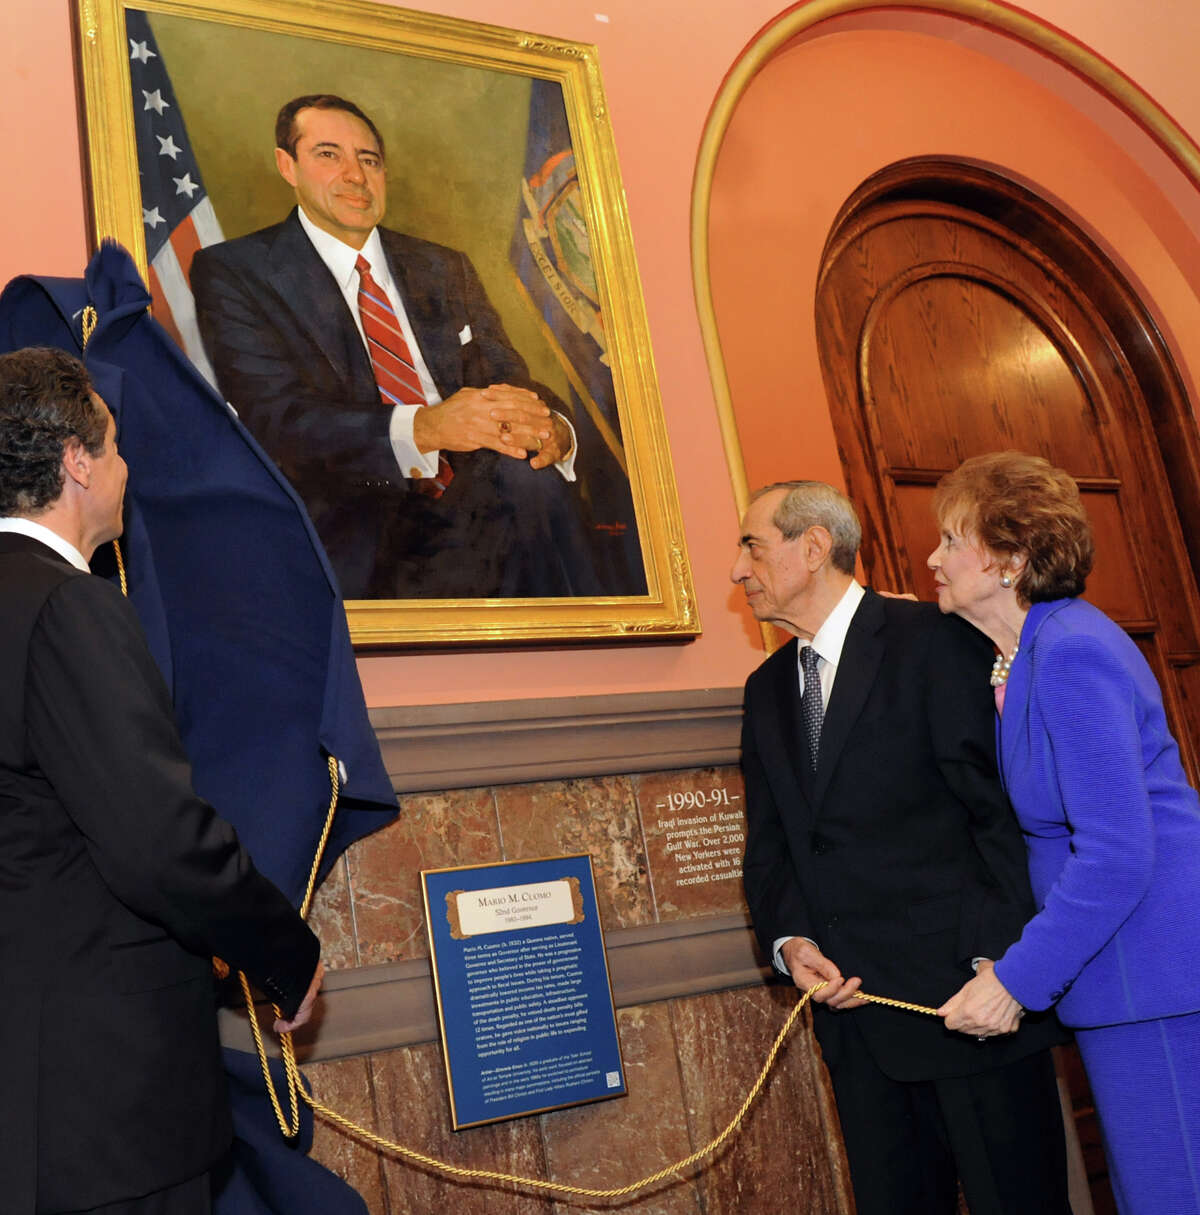 Gov. Andrew Cuomo, left, joins his father, former Gov. Mario Cuomo, and mother, former First Lady Matilda Cuomo, as the elder Cuomo's portrait is revealed in the Hall of Governors on Saturday, June 15, 2013, at the Capitol in Albany, N.Y. (Cindy Schultz / Times Union)